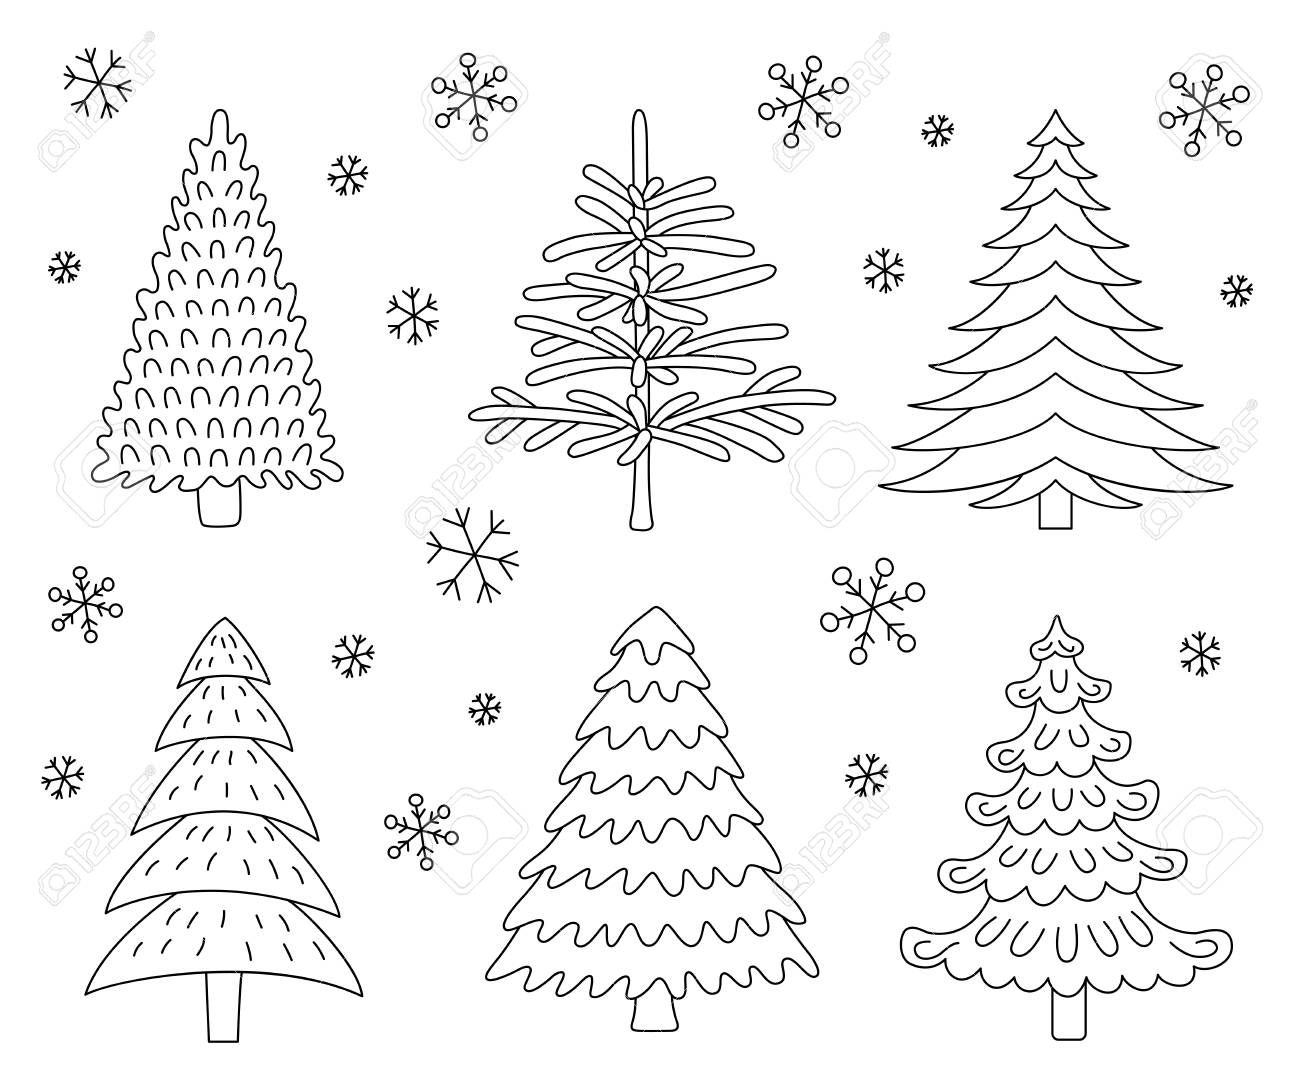 Christmas Tree Icons.Christmas Tree Icons Made In The Style Of A Sketch Vector Illustration